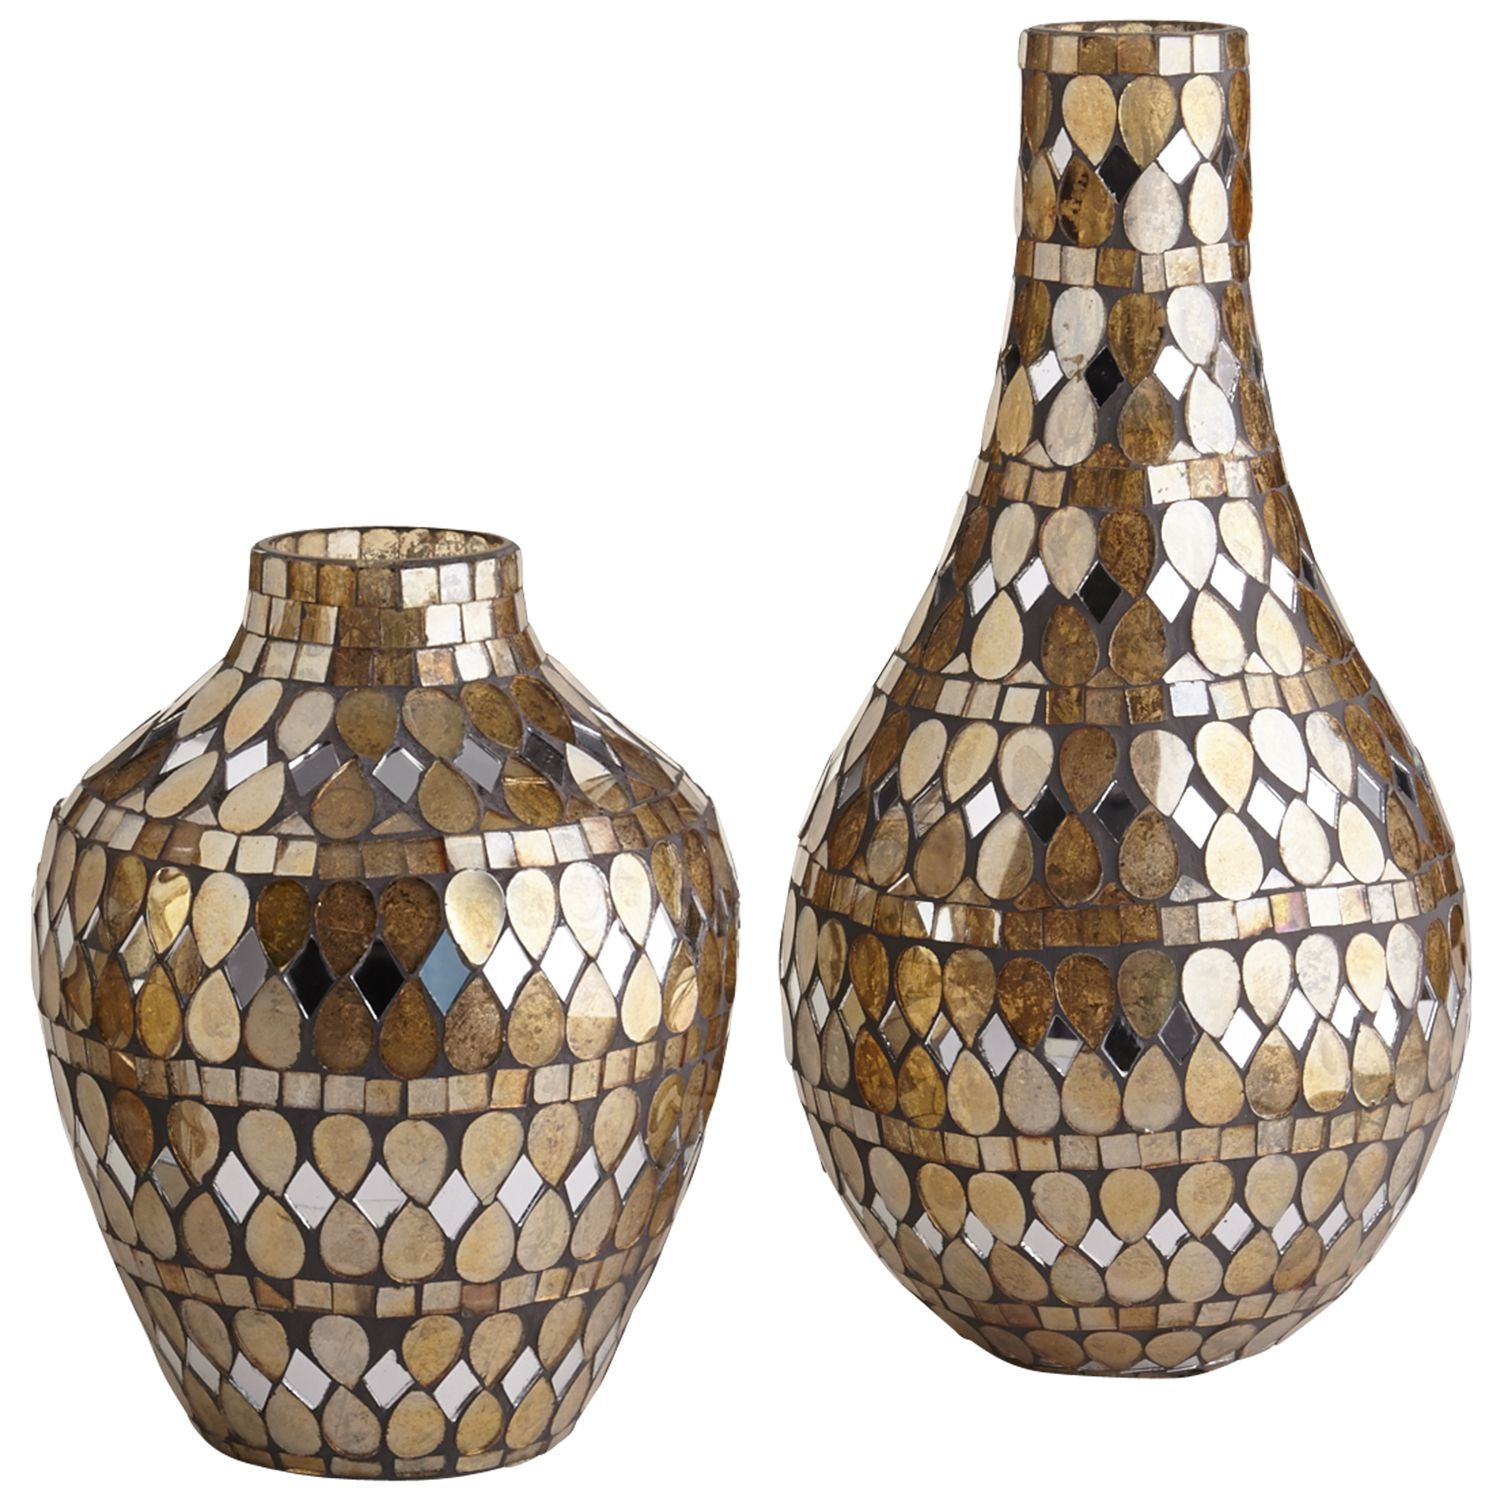 Golden Mosaic Vases Glass Mosaic Vase Vases Decor Vase